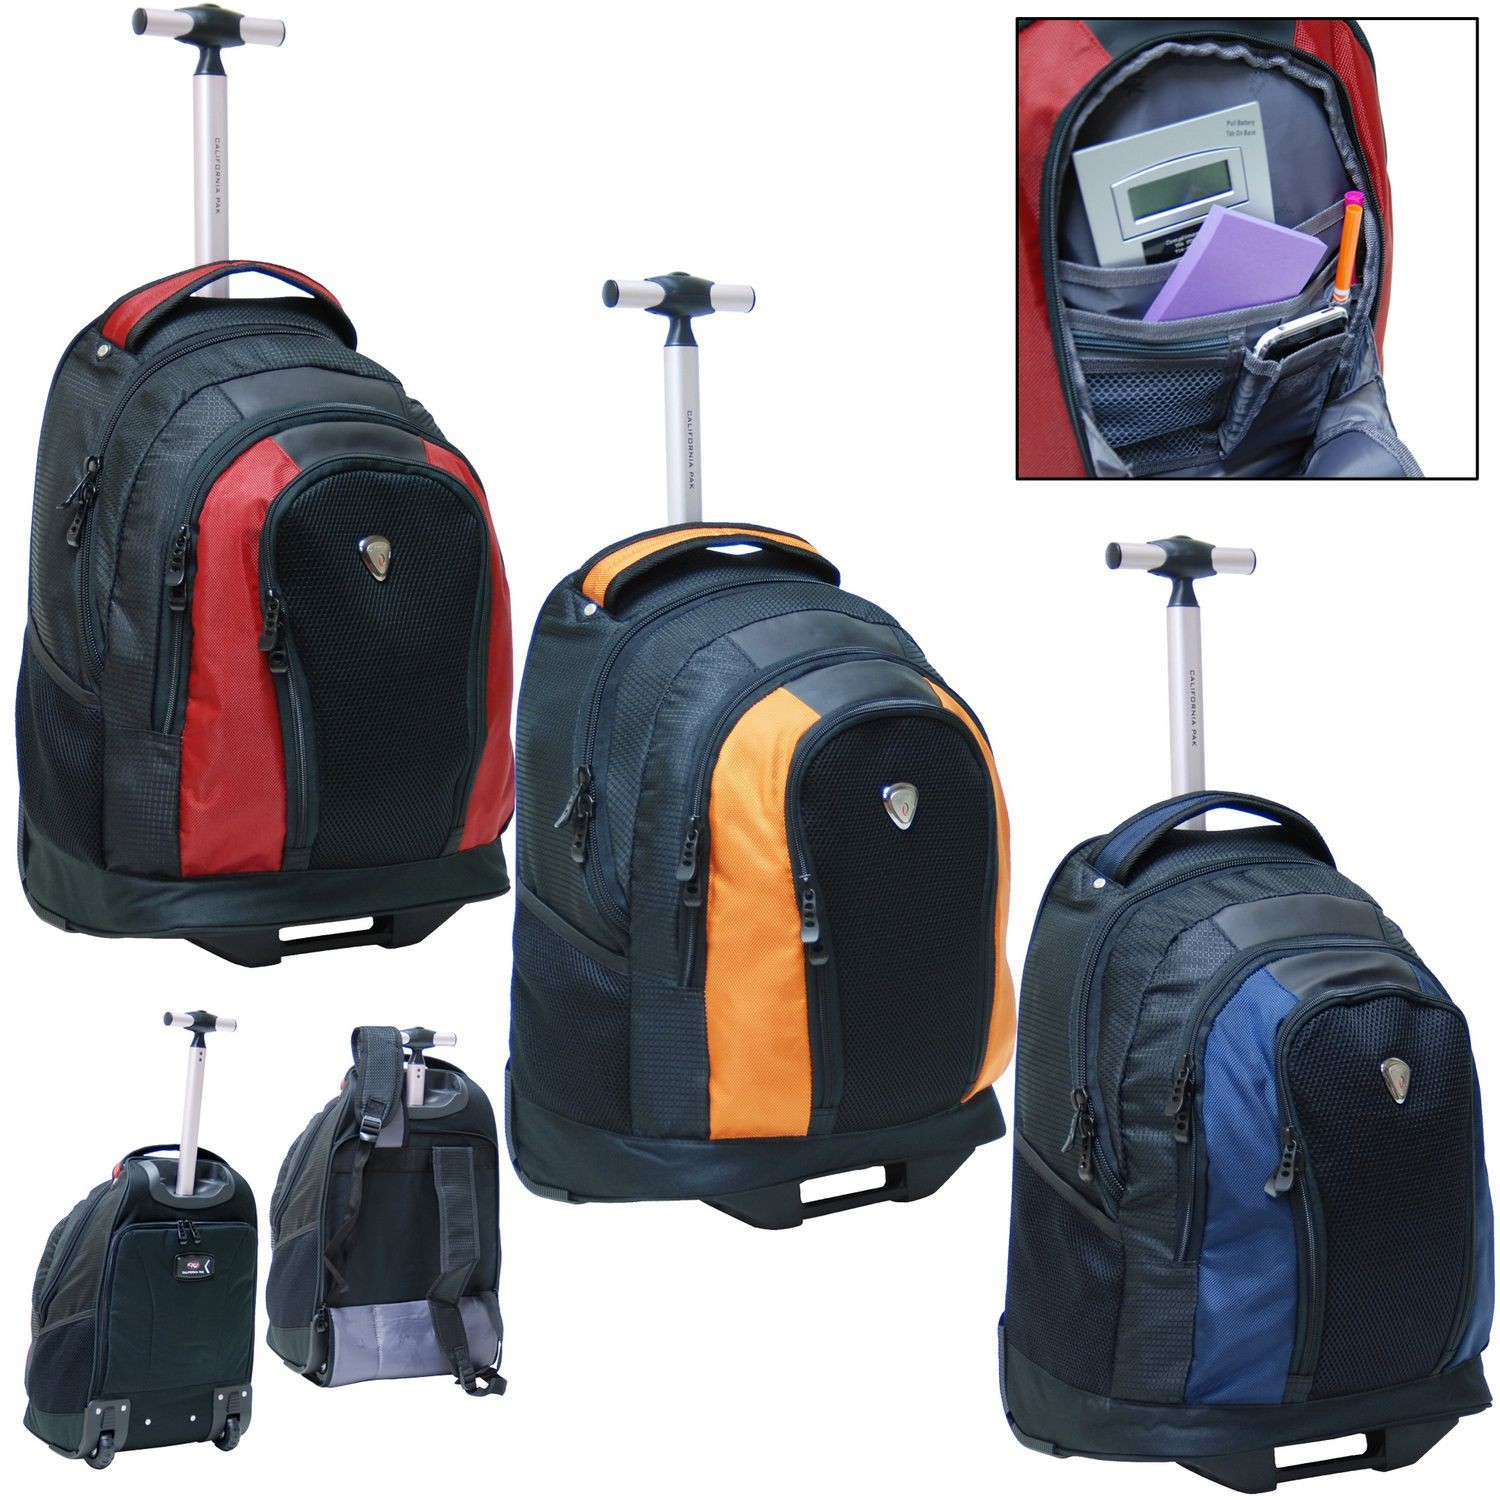 Roller Backpack For School cb4IMsXO